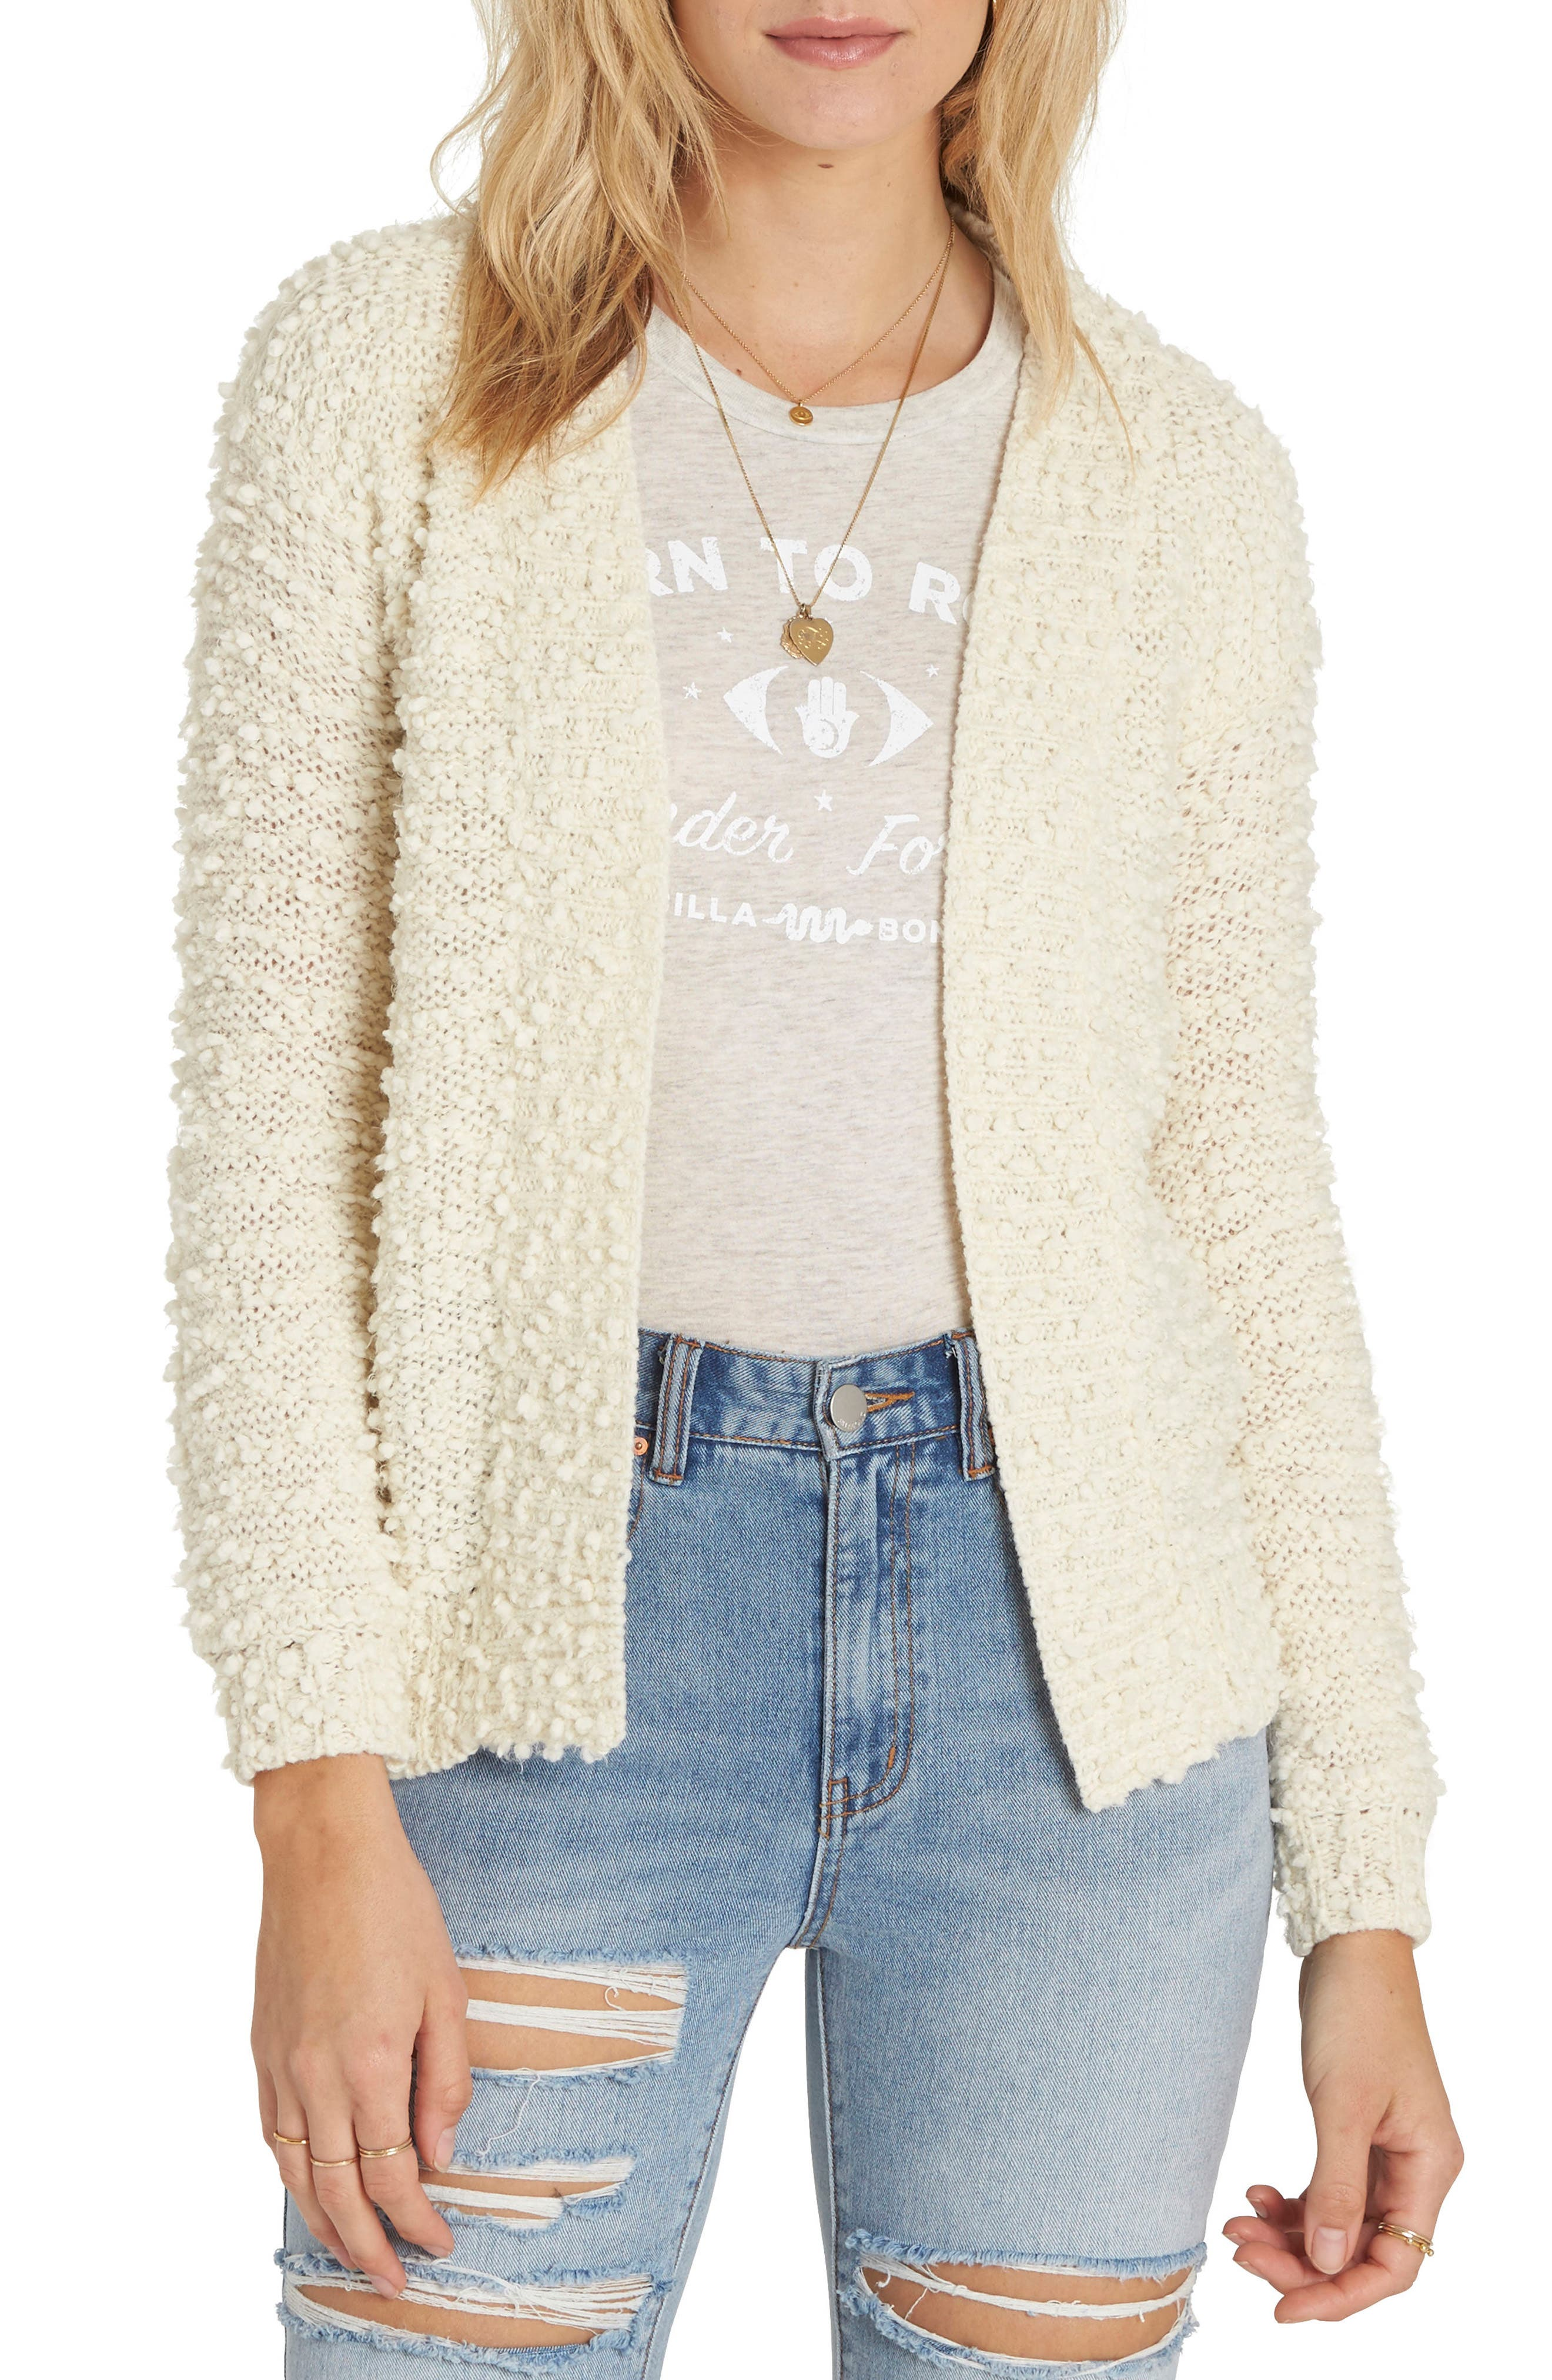 Bouclé Cardigan,                             Main thumbnail 1, color,                             White Cap